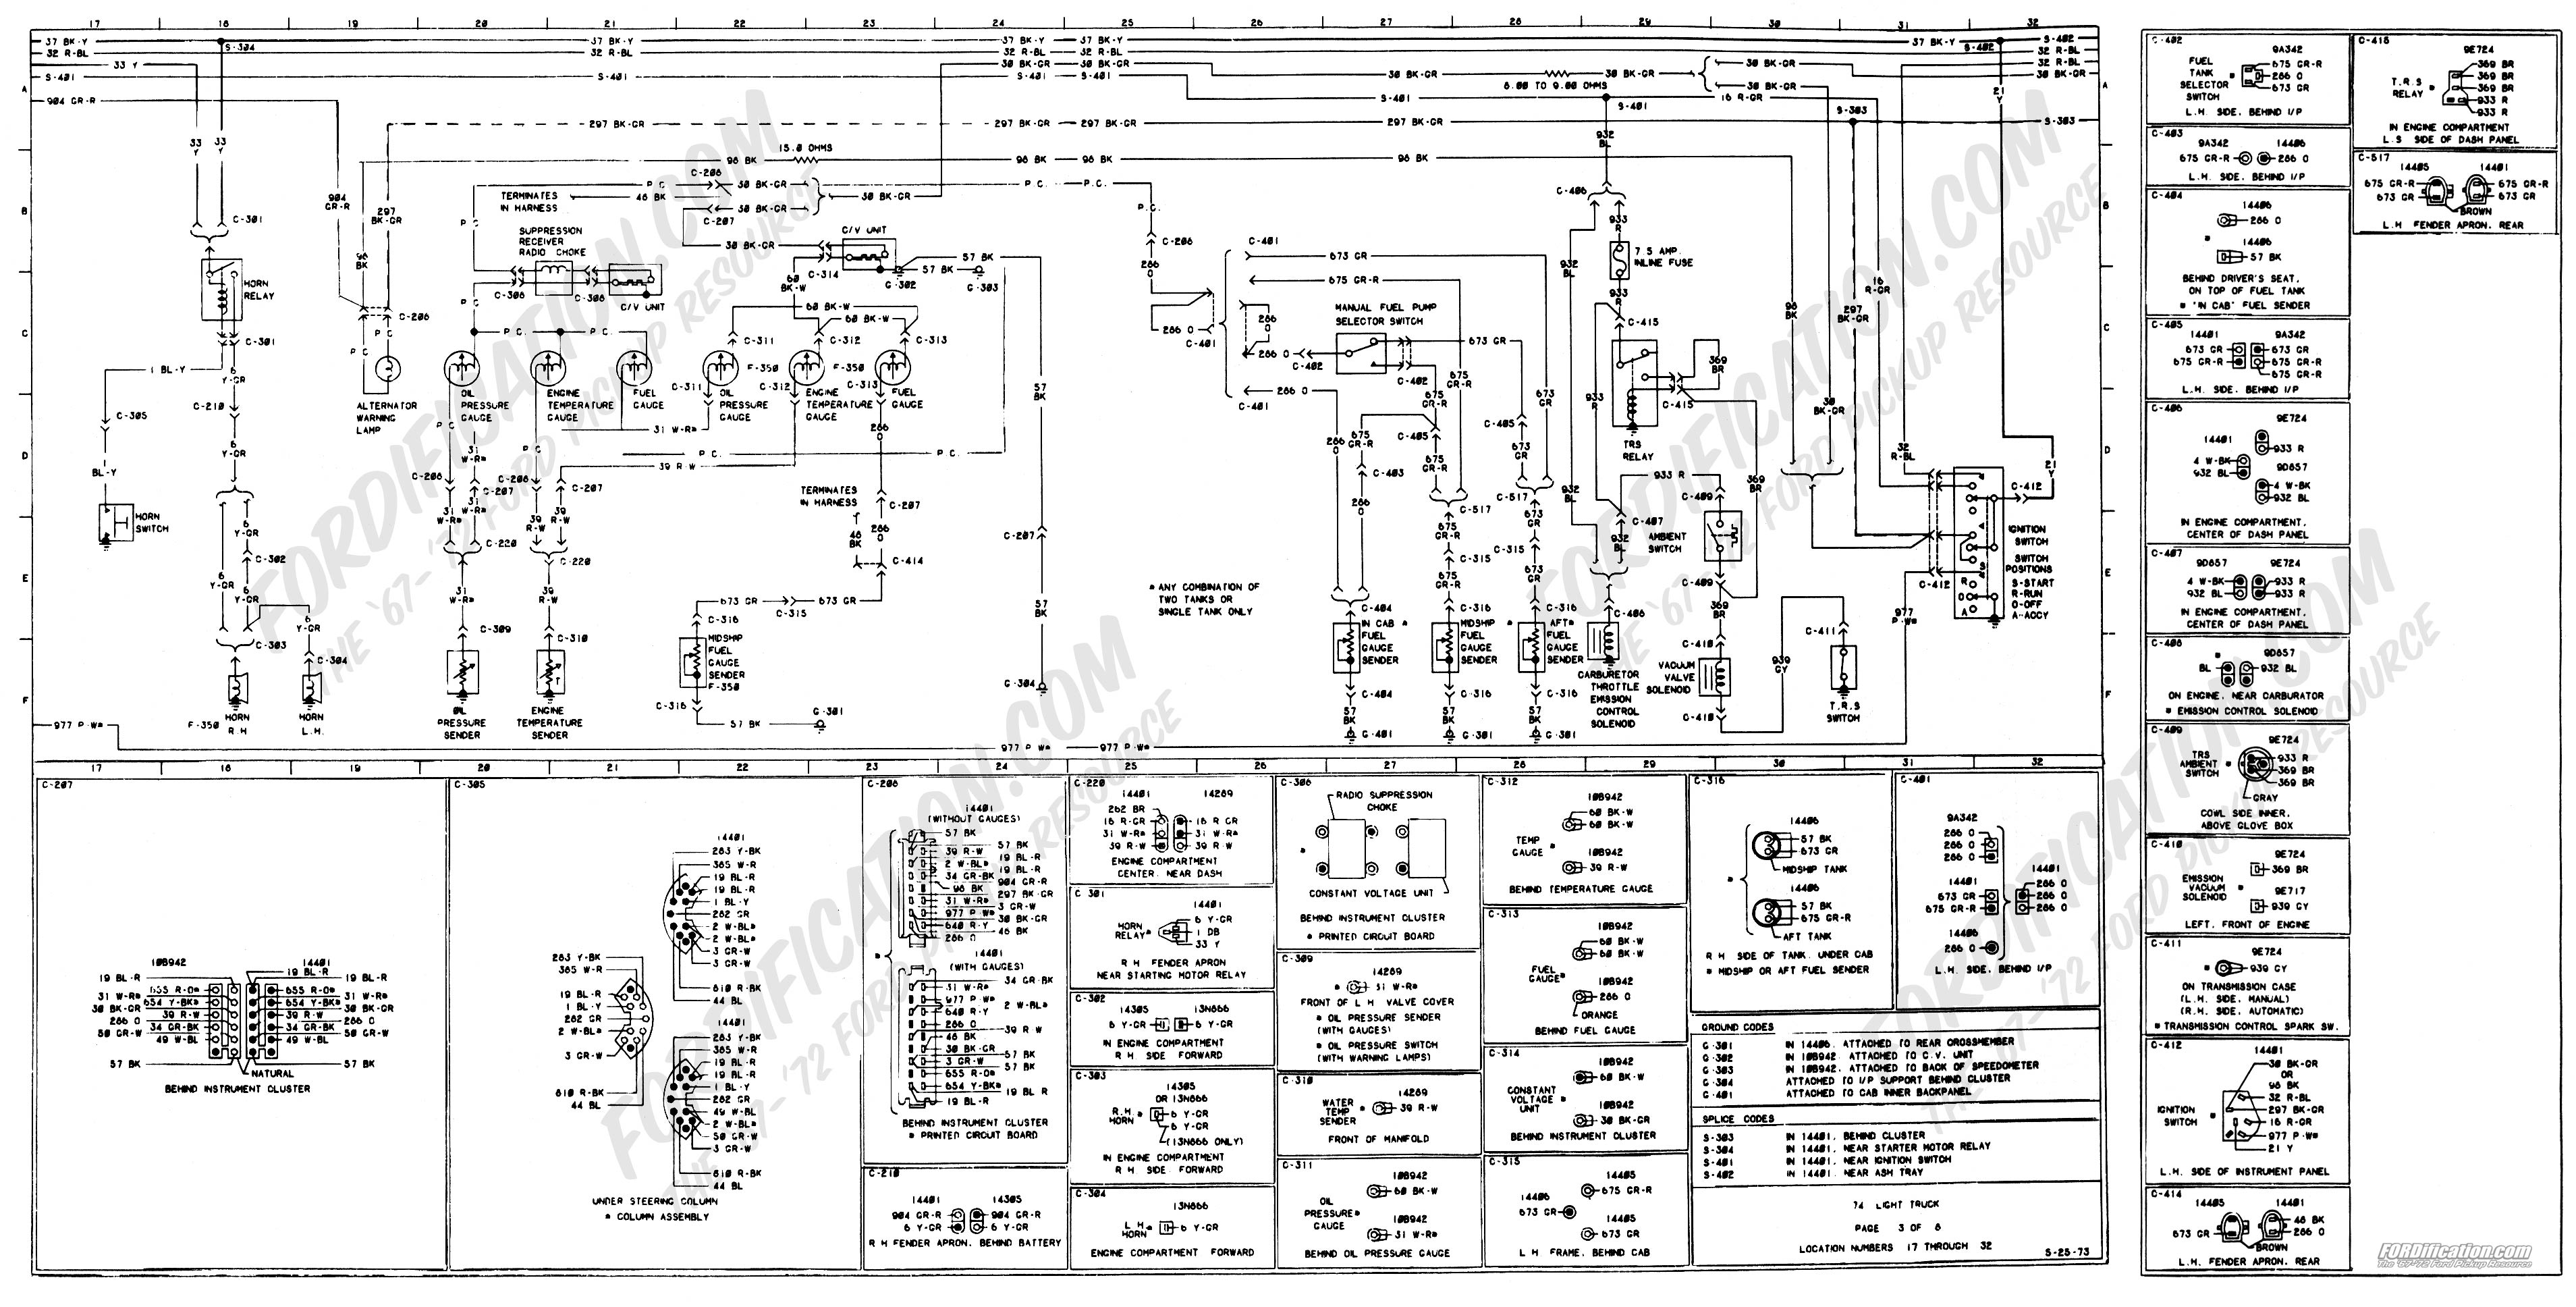 wiring_74master_3of8 1973 1979 ford truck wiring diagrams & schematics fordification net 1971 ford f250 wiring diagram at metegol.co